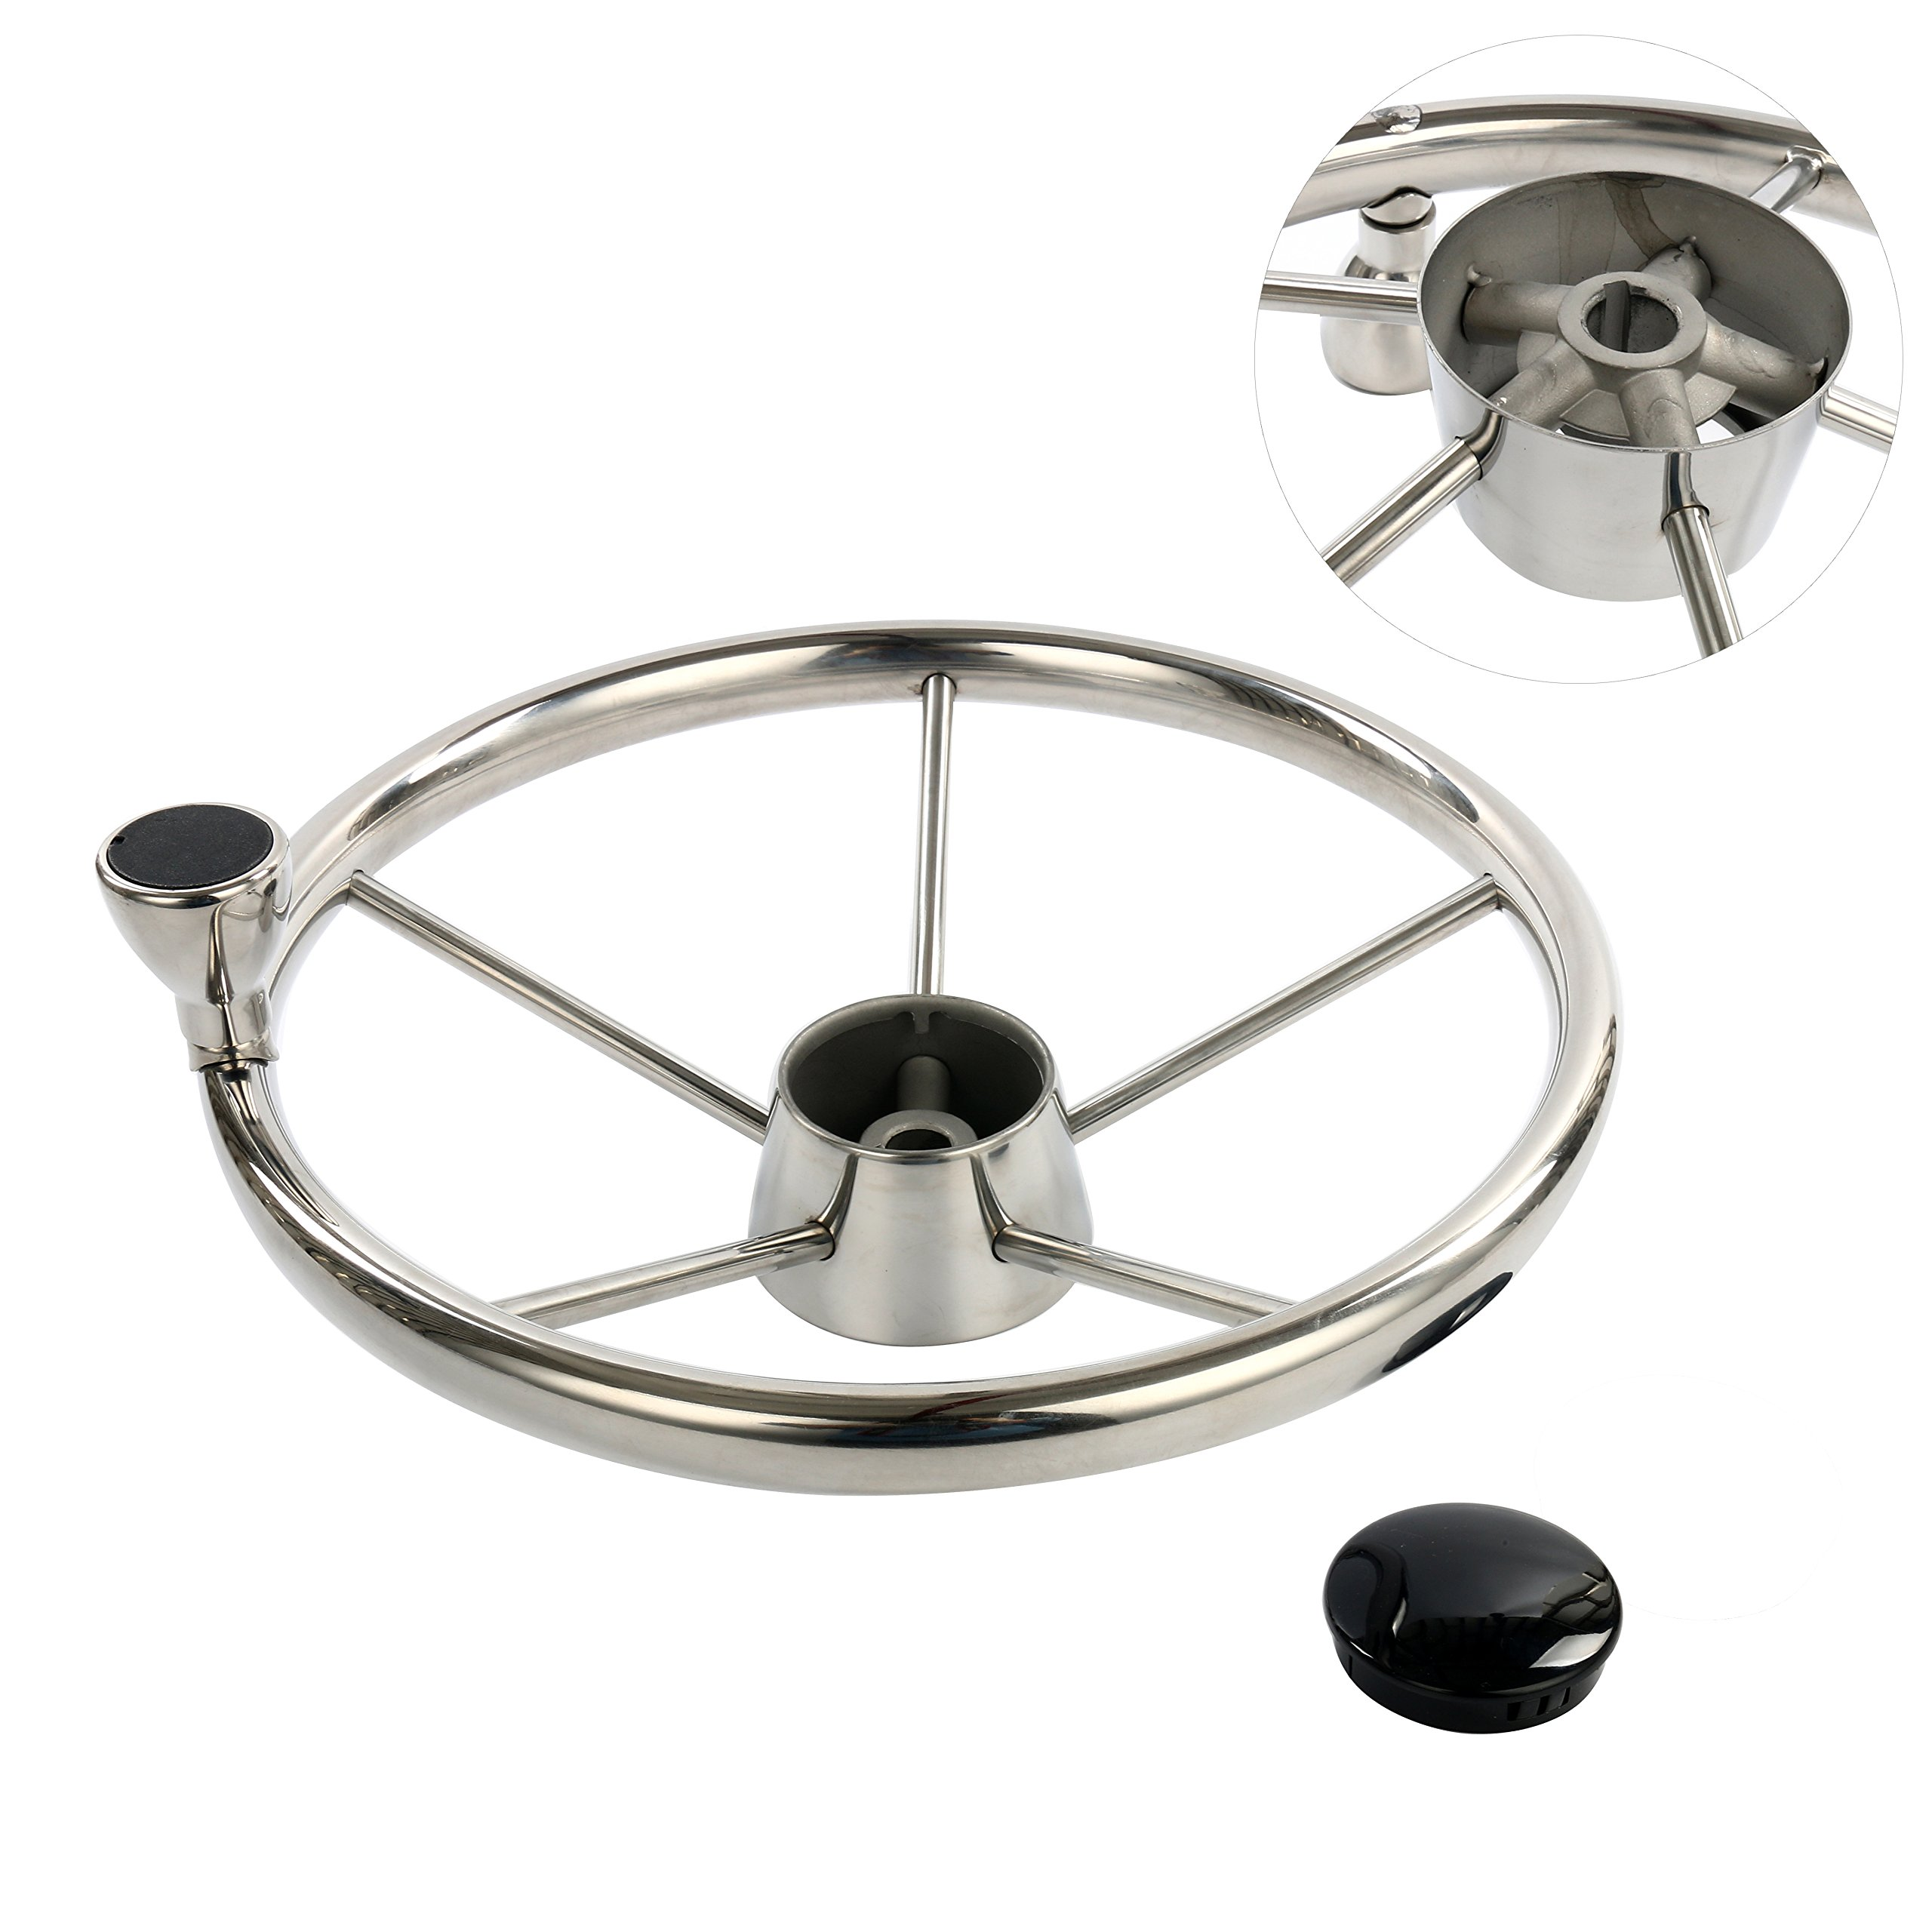 Amarine-made 5-spoke 13-1/2 Inch Destroyer Style Stainless Boat Steering Wheel with M Size Knob - 9310SRF1 by Amarine Made